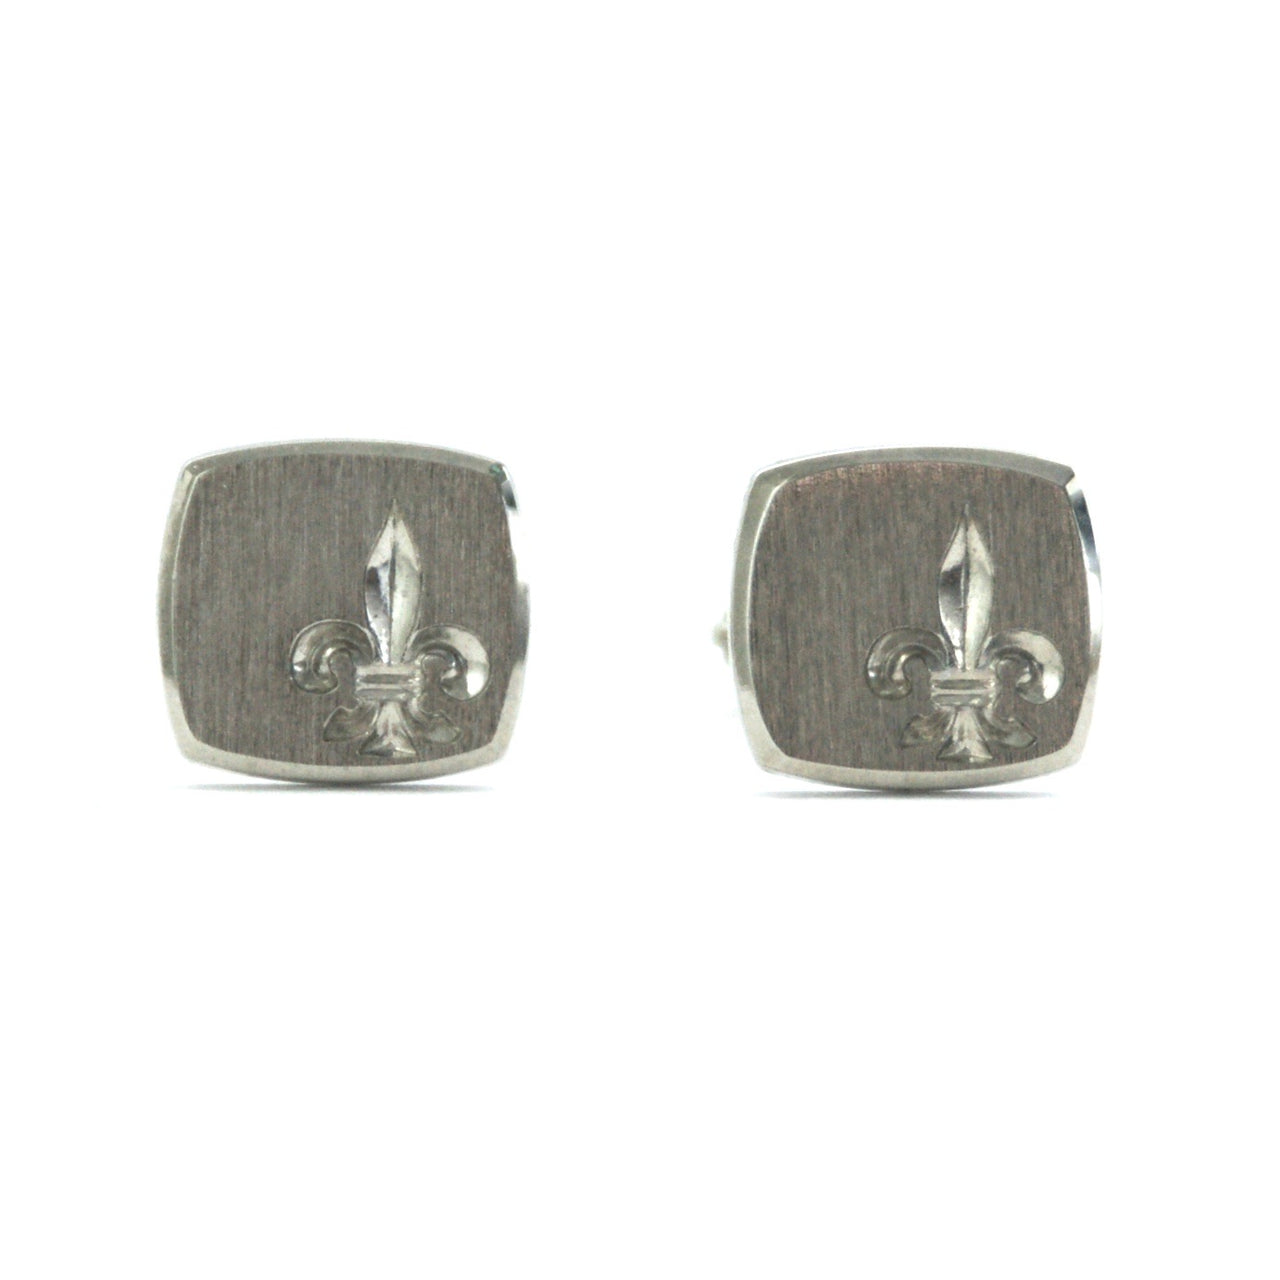 Fathers Day gift, fathers day, cufflinks,